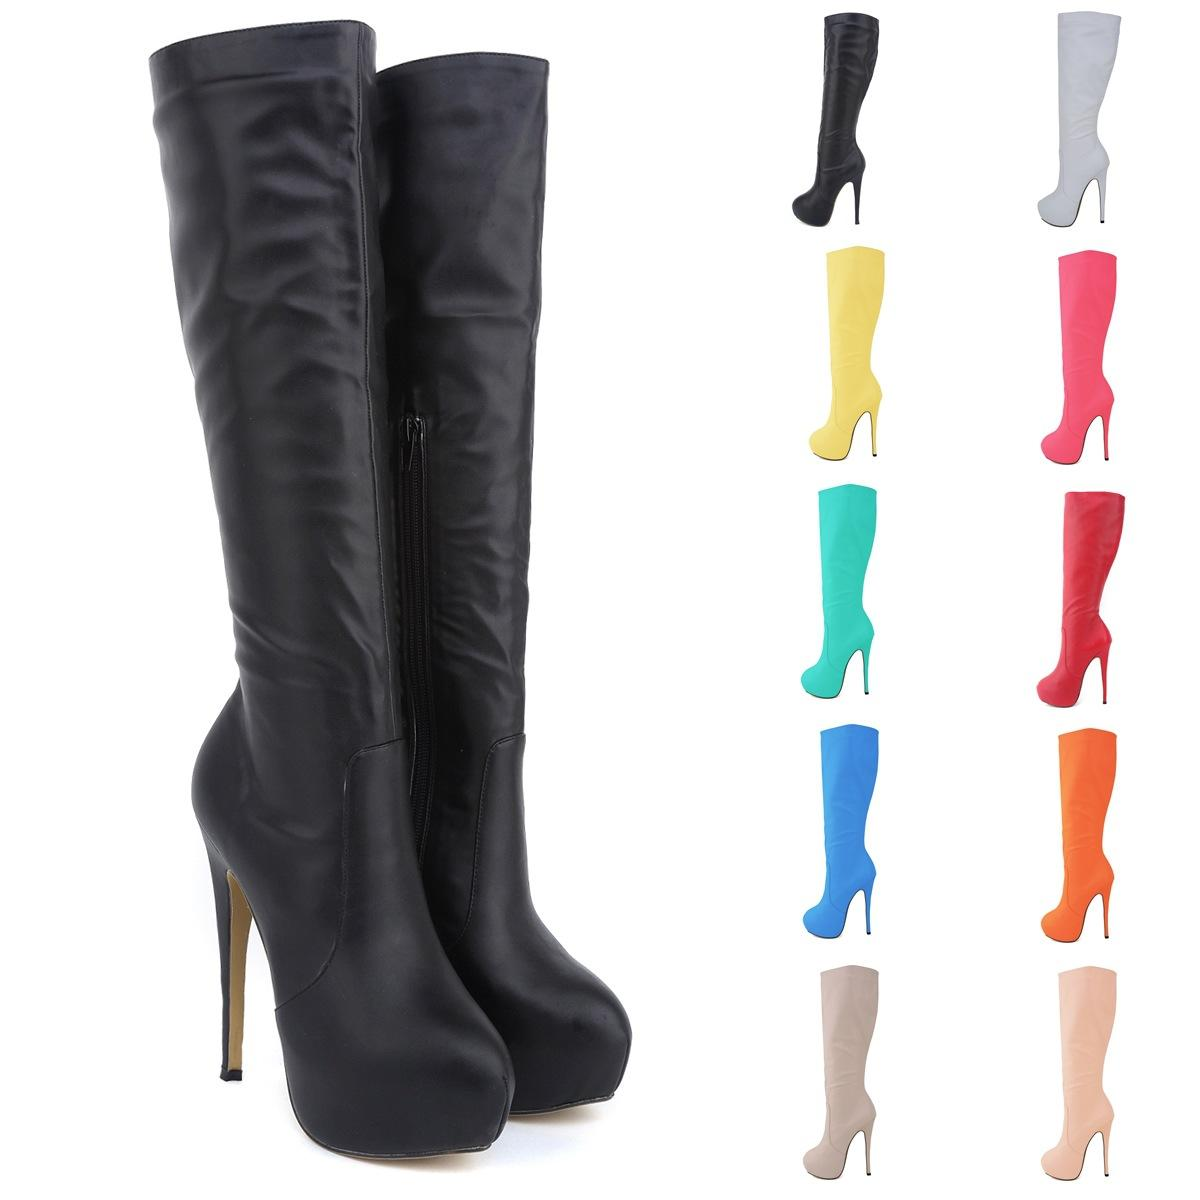 d2047404efb Boot Female Brand New Women High Heels Knee Wide Leg Stretch Women Boots  Sexy Winter Autumn Shoes Us Size 4 5 6 7 8 9 10 11 D0040 Wedge Boots  Waterproof ...